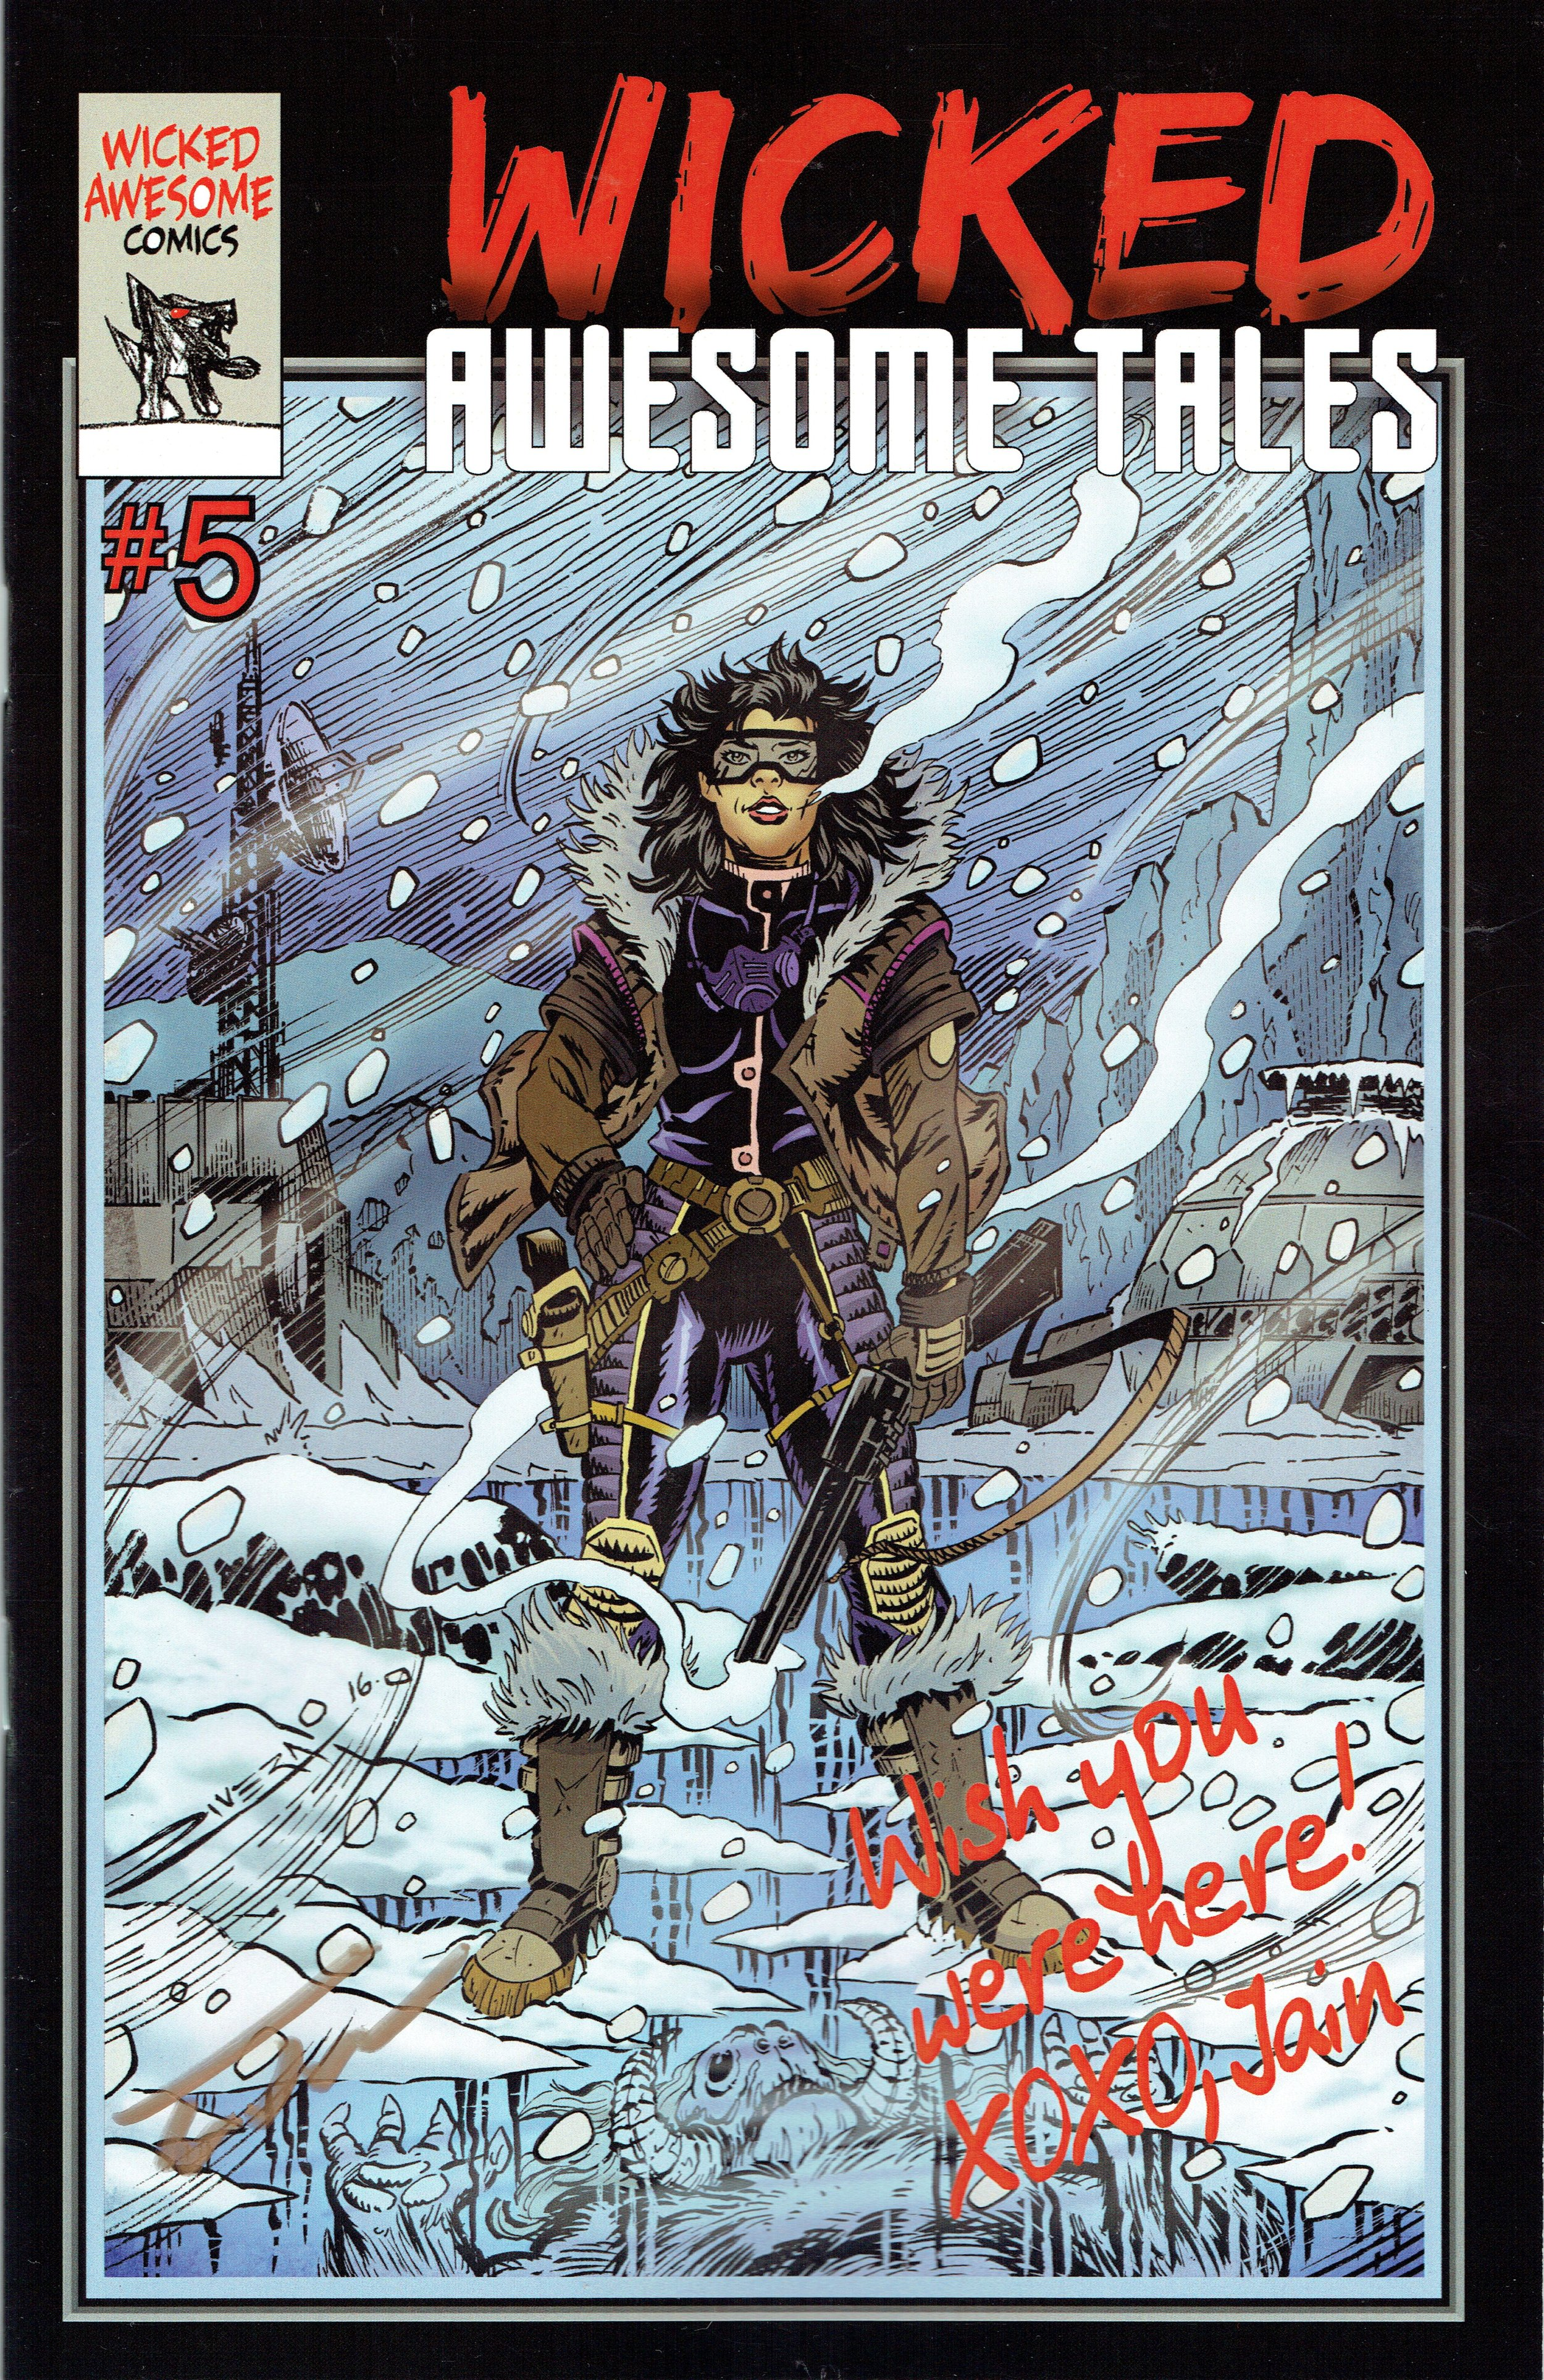 Wicked Awesome Tales #5 from Wicked Awesome Comics.